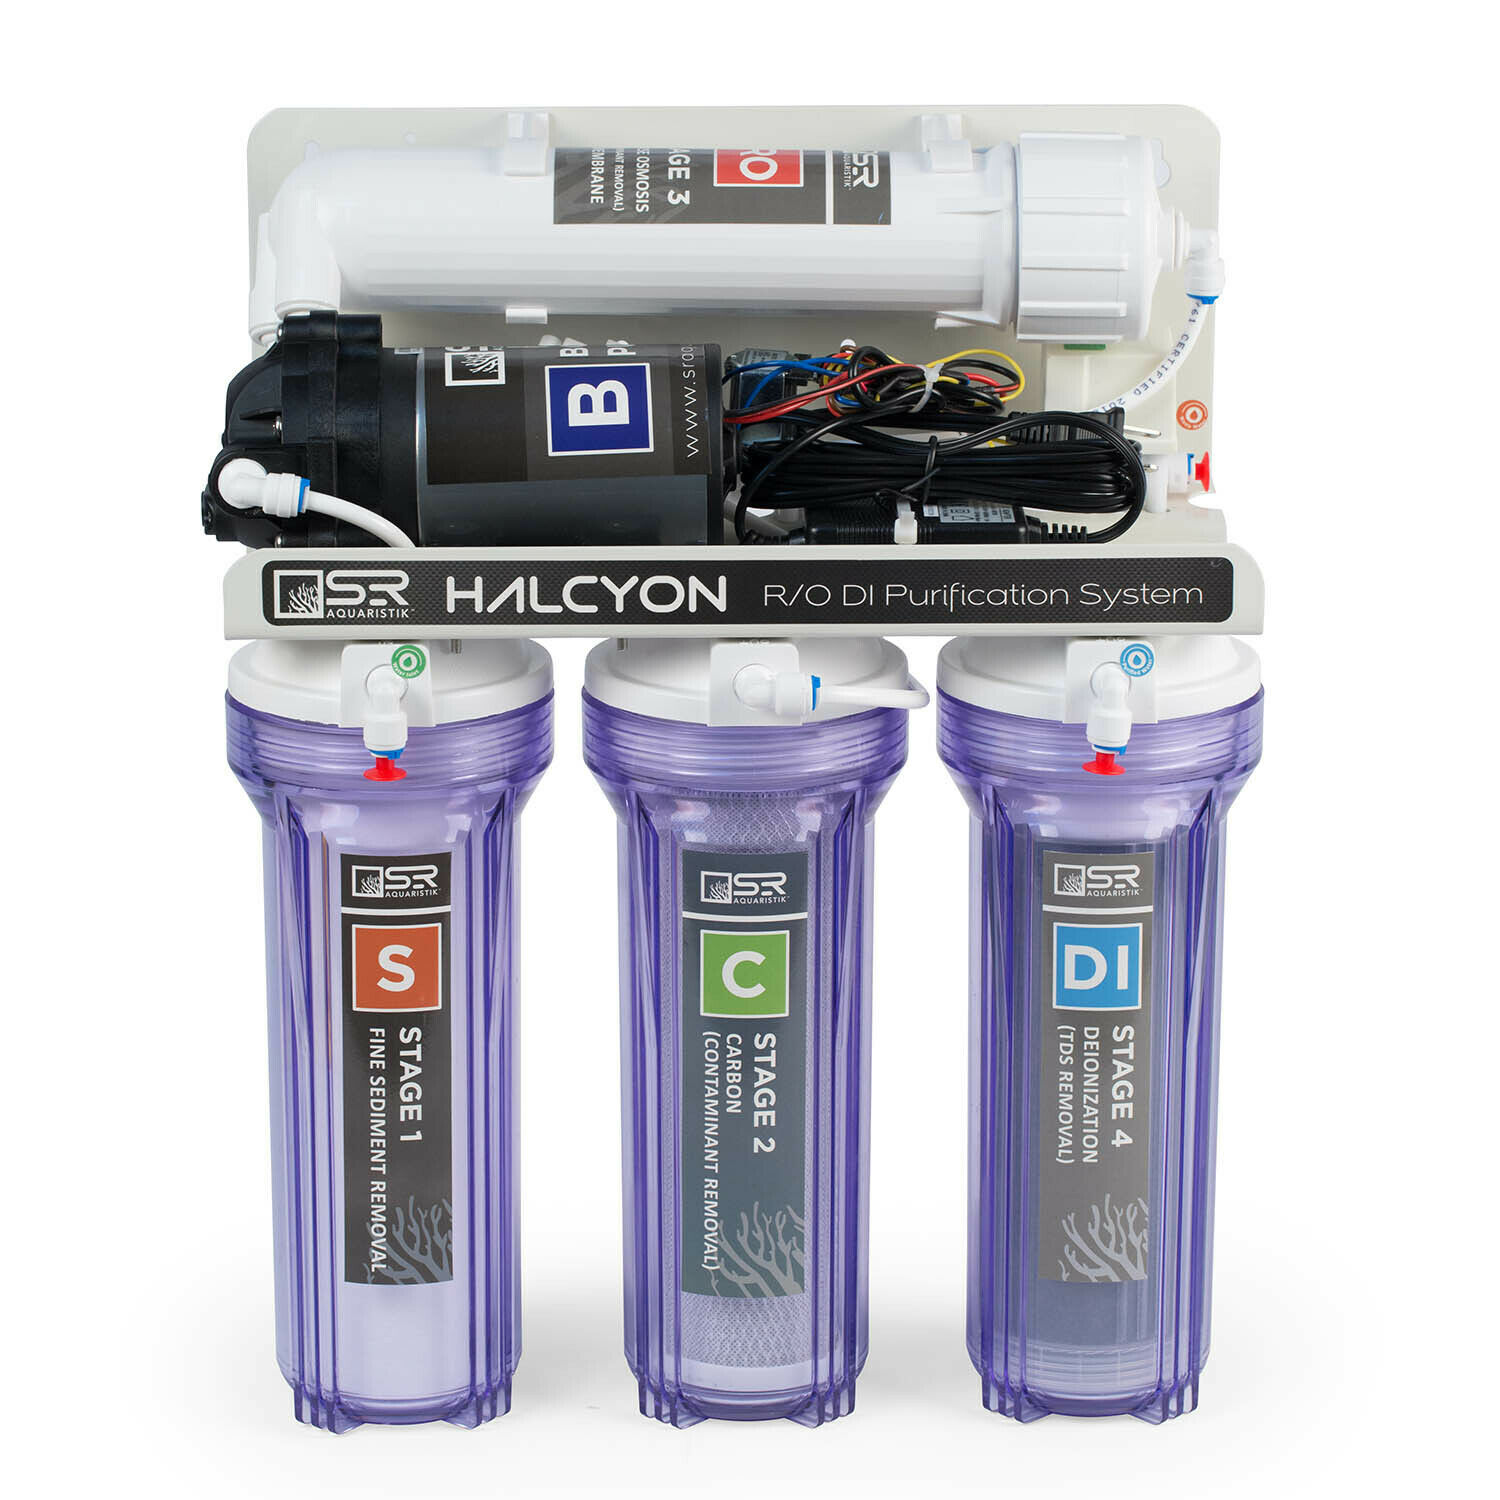 HALCYON - 4 Stage PRO RO DI Purification System SR Aquaristik